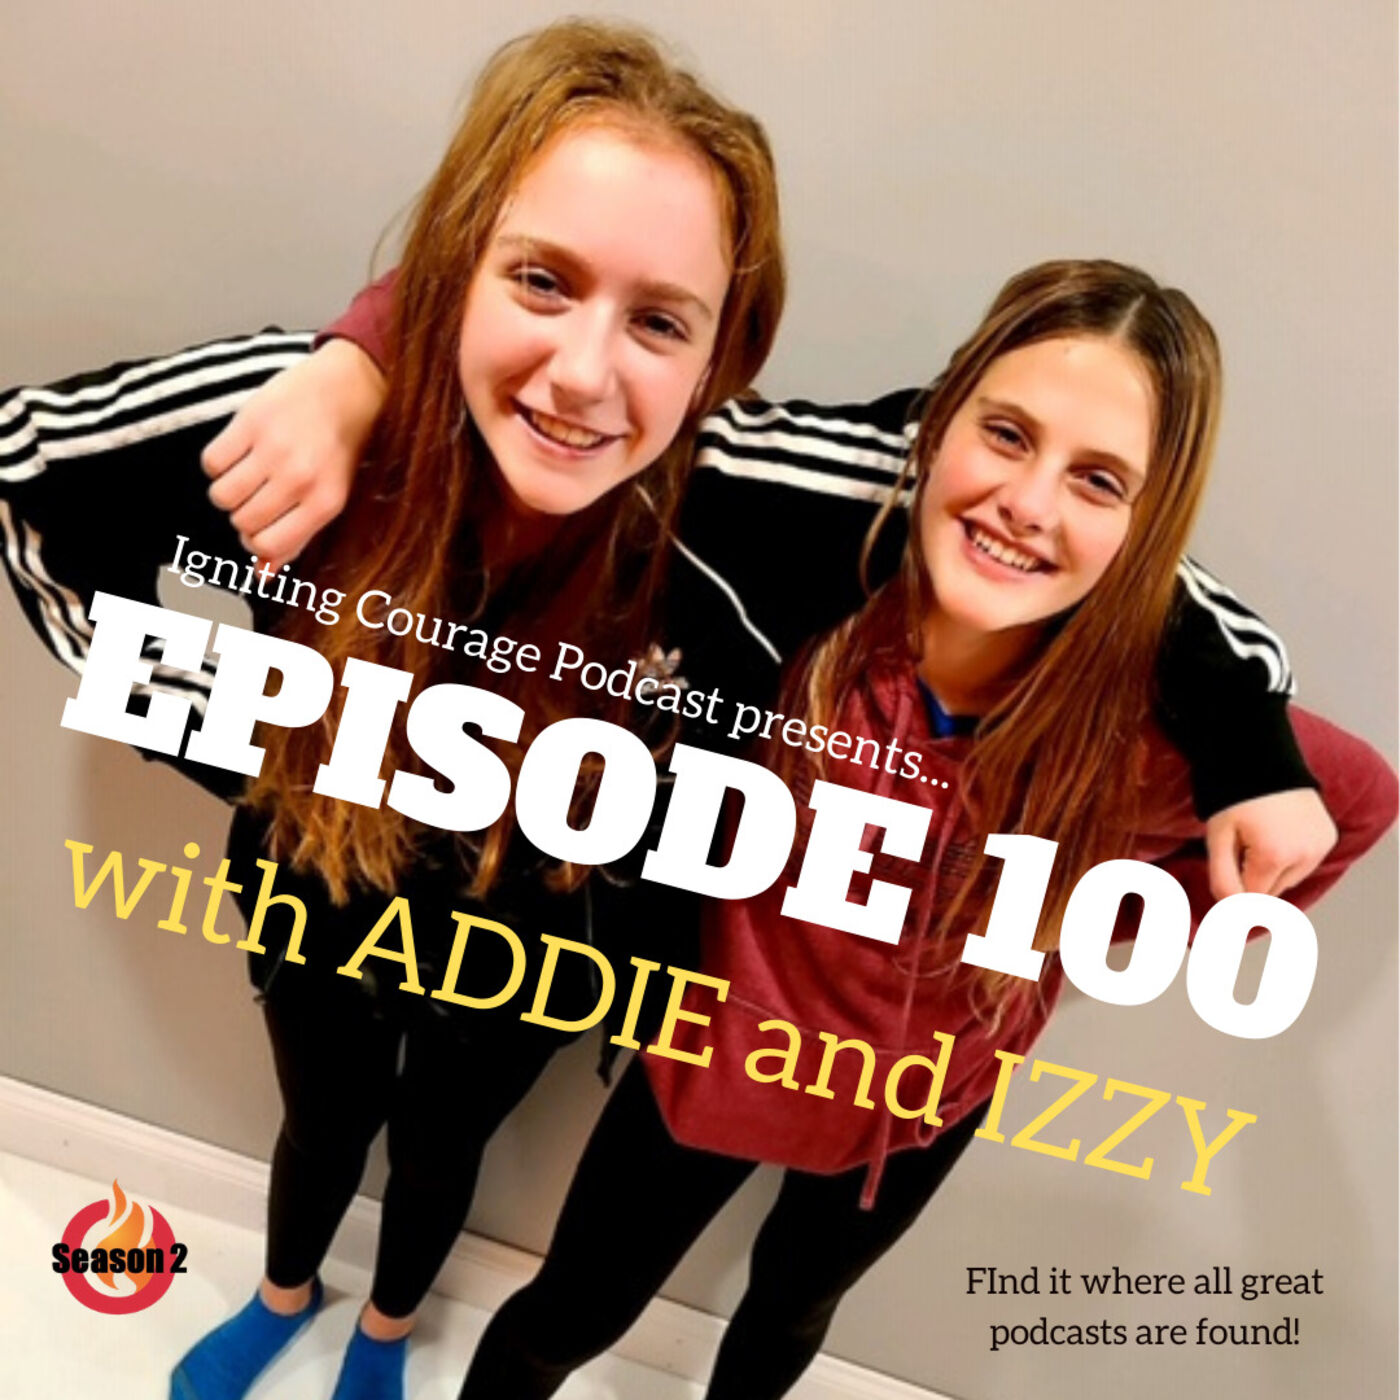 IGNITING COURAGE Podcast Episode 100: Addie and Izzy, Perspectives from The Yoots